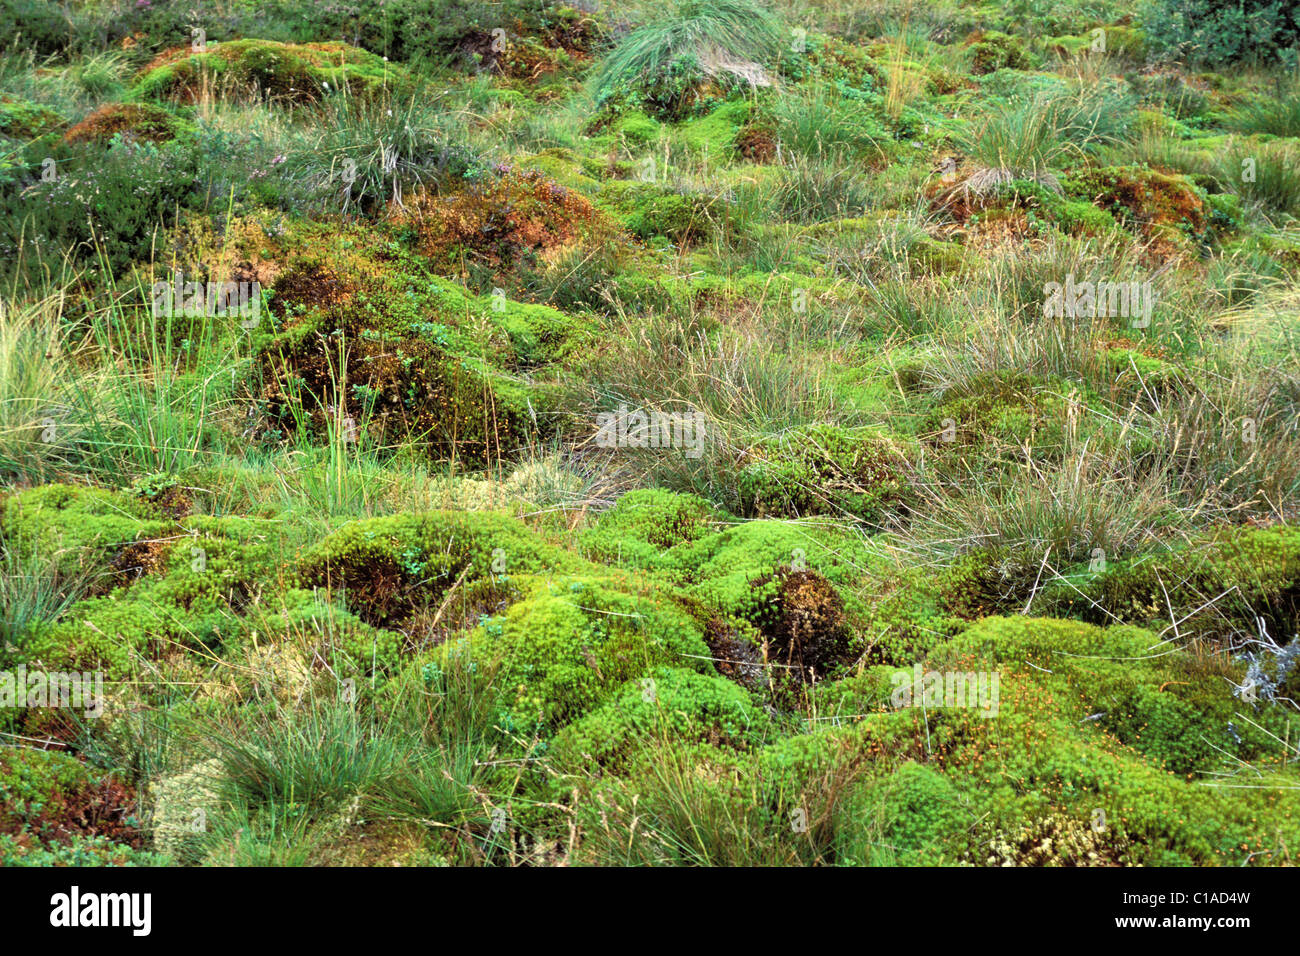 Sphagnum (moss) and heather in peatland - Stock Image